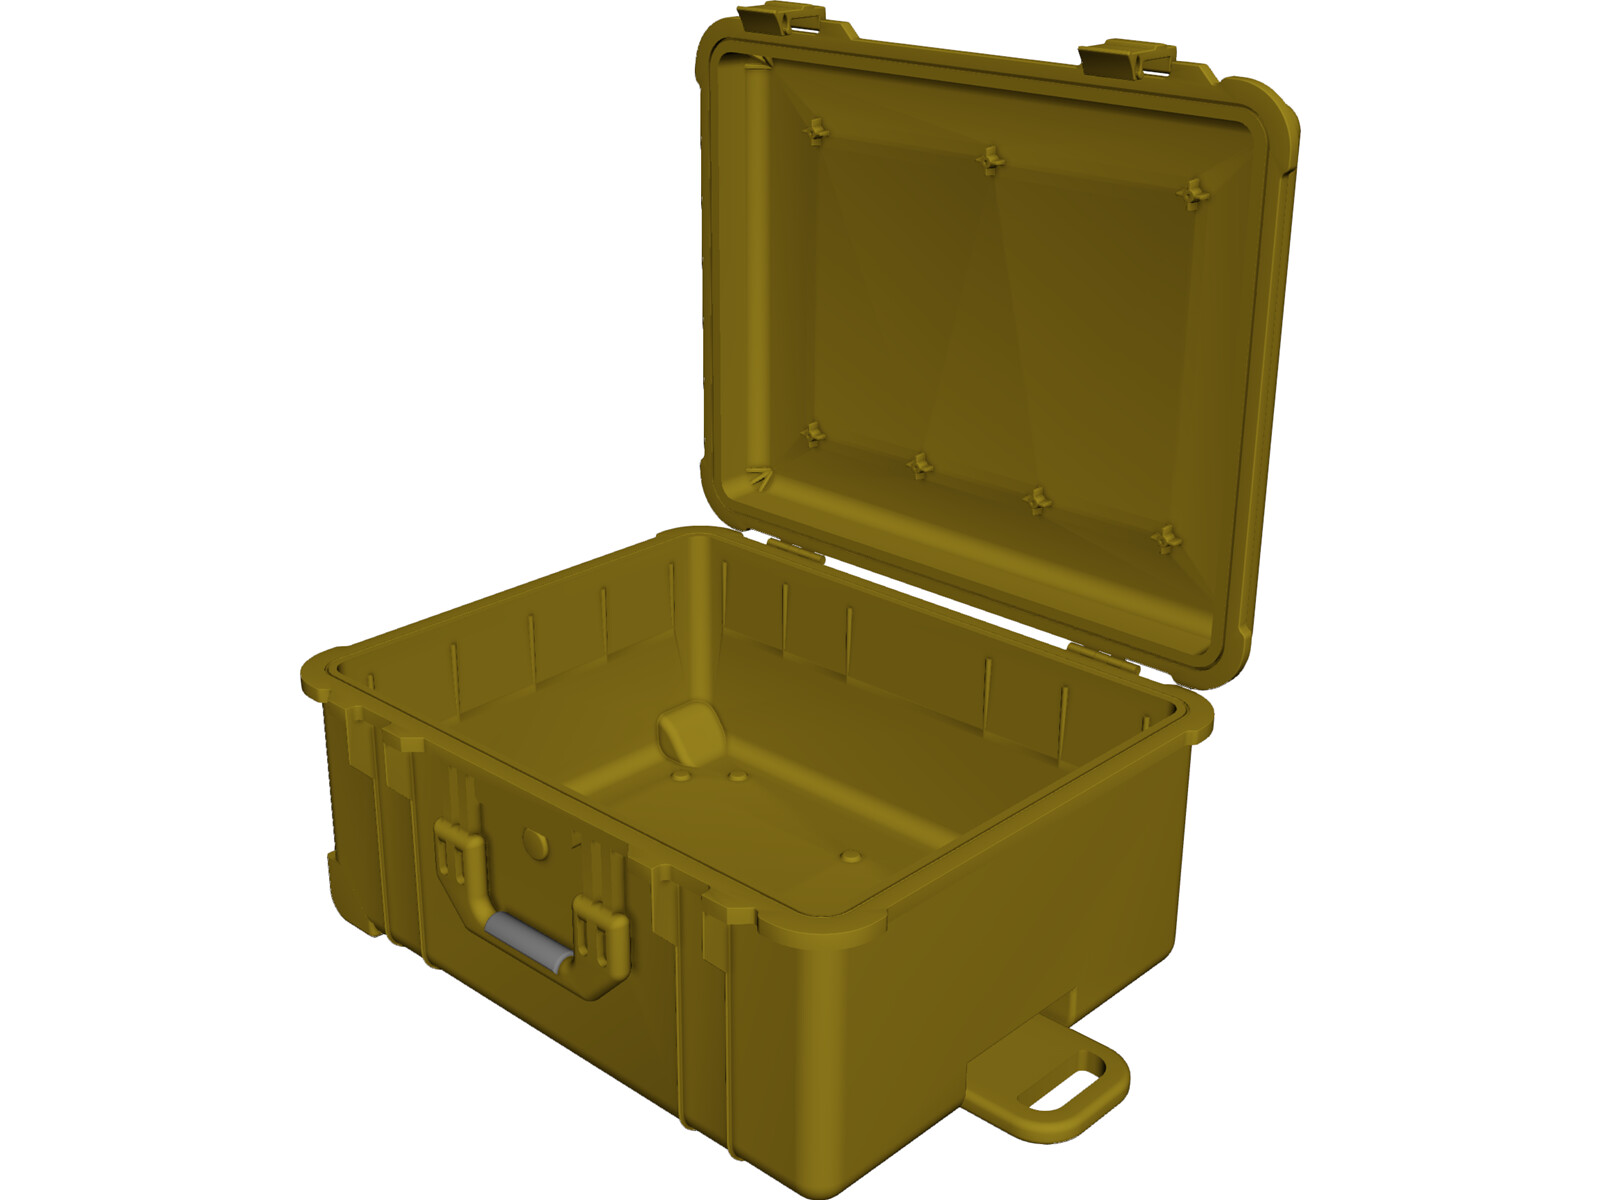 Pelican case model 1610 3d cad model 3d cad browser Cad models